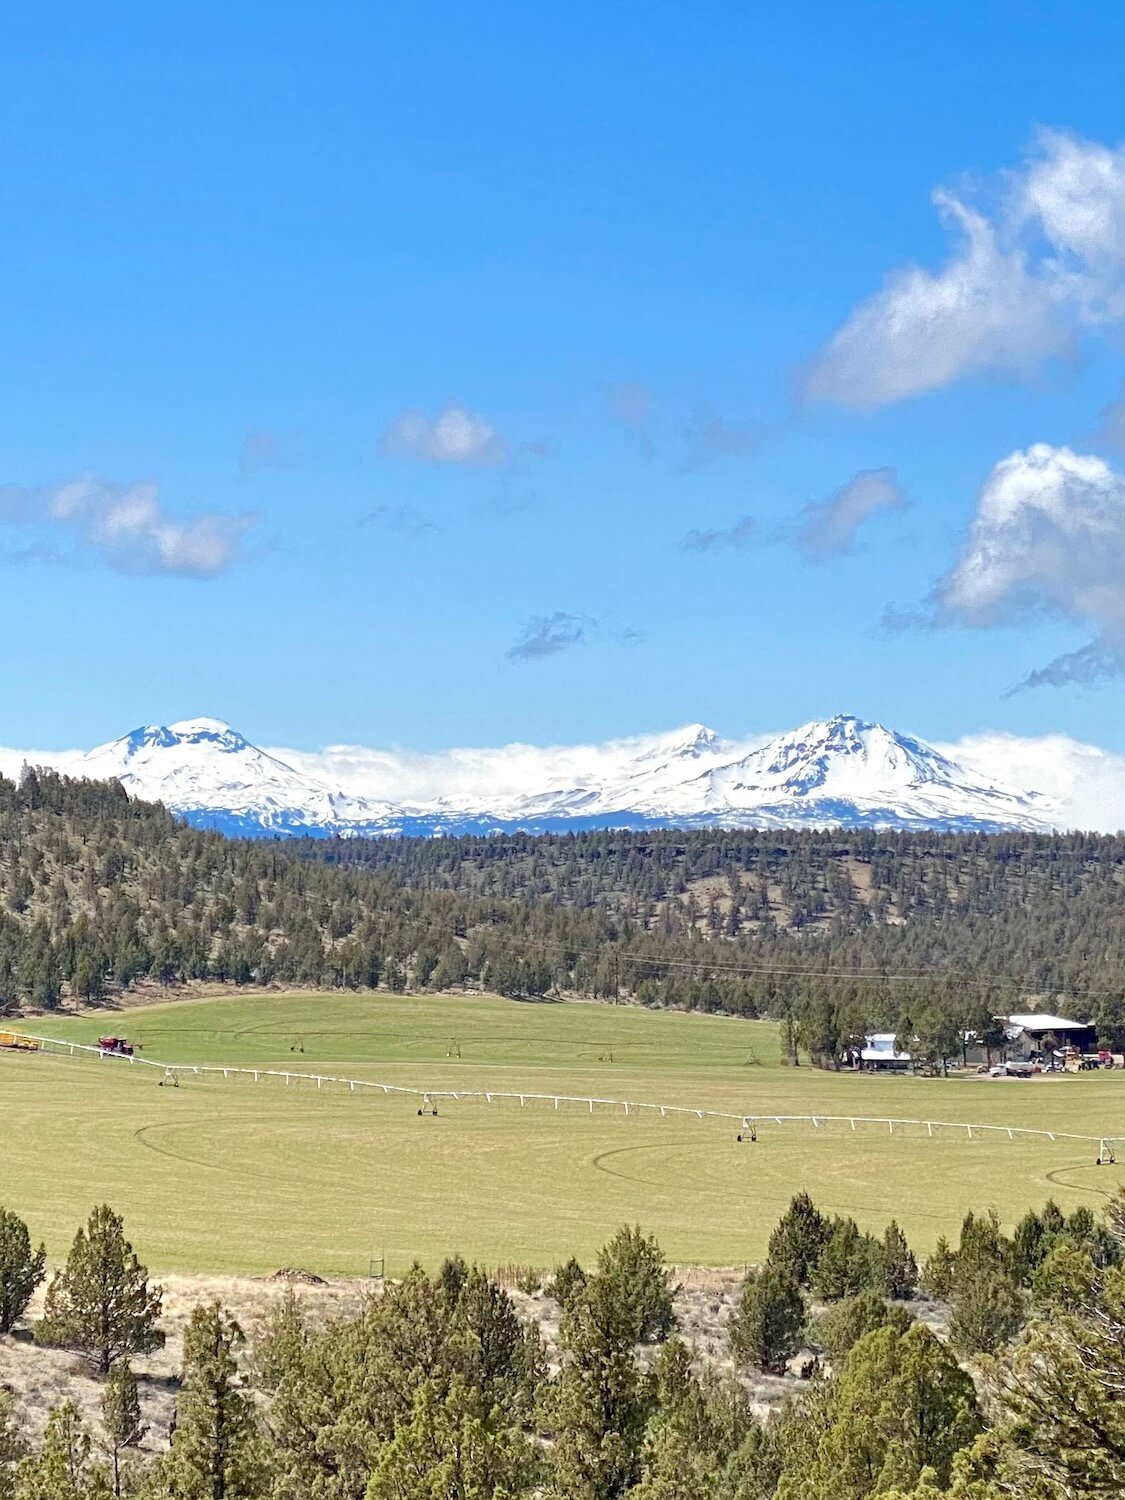 This beautiful landscape scene shows off the stunning beauty of the Three Sisters that rise up above scattered clouds to a bright blue sky.  In the foreground is a green field of crops surrounded by young pine trees.